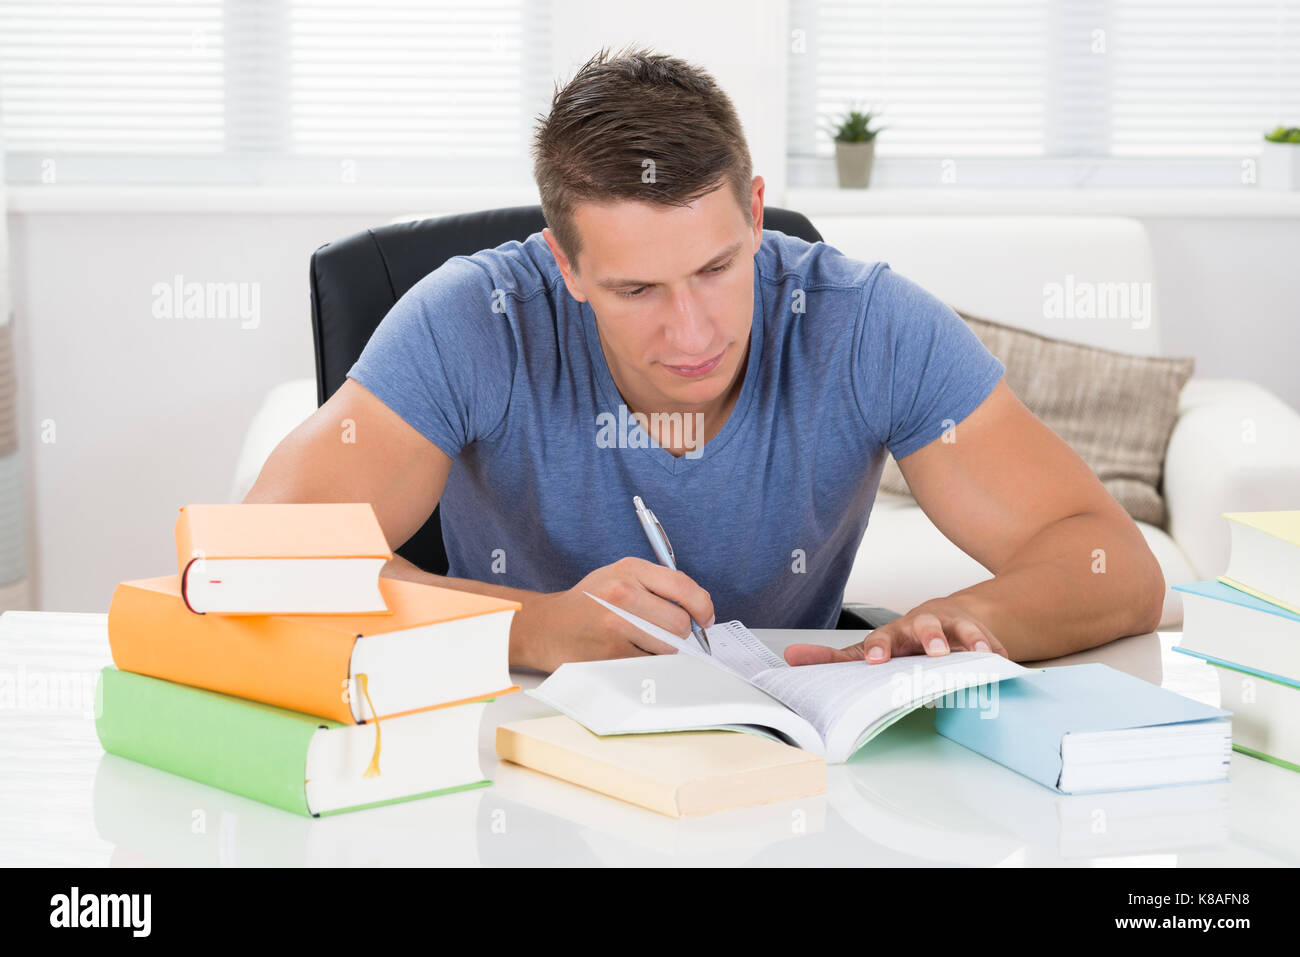 Young Man Reading Books At Desk In Living Room - Stock Image